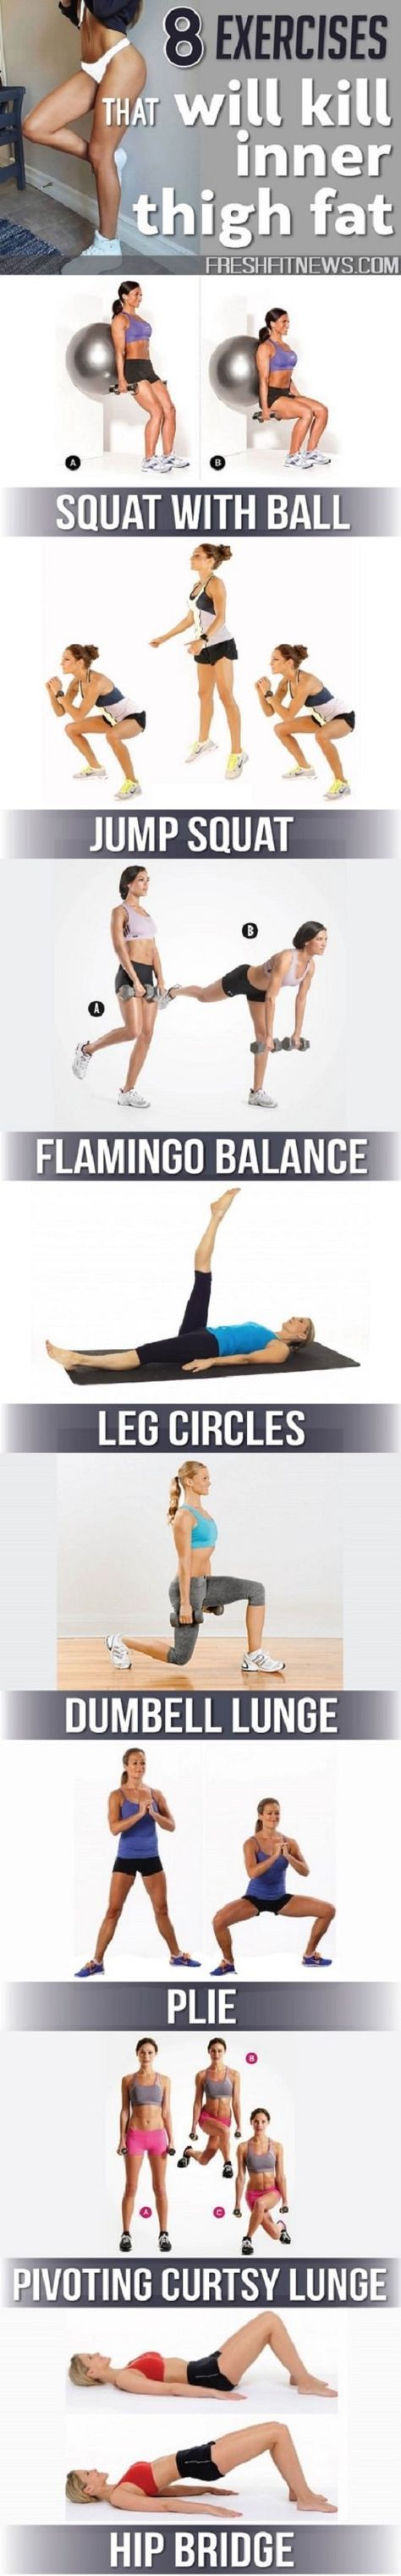 If you have an inner thigh fat, you can't wear skinny jeans, mini skirts, and hot pants perfectly. But if you want to get rid of it– Look at these 8 exercises!